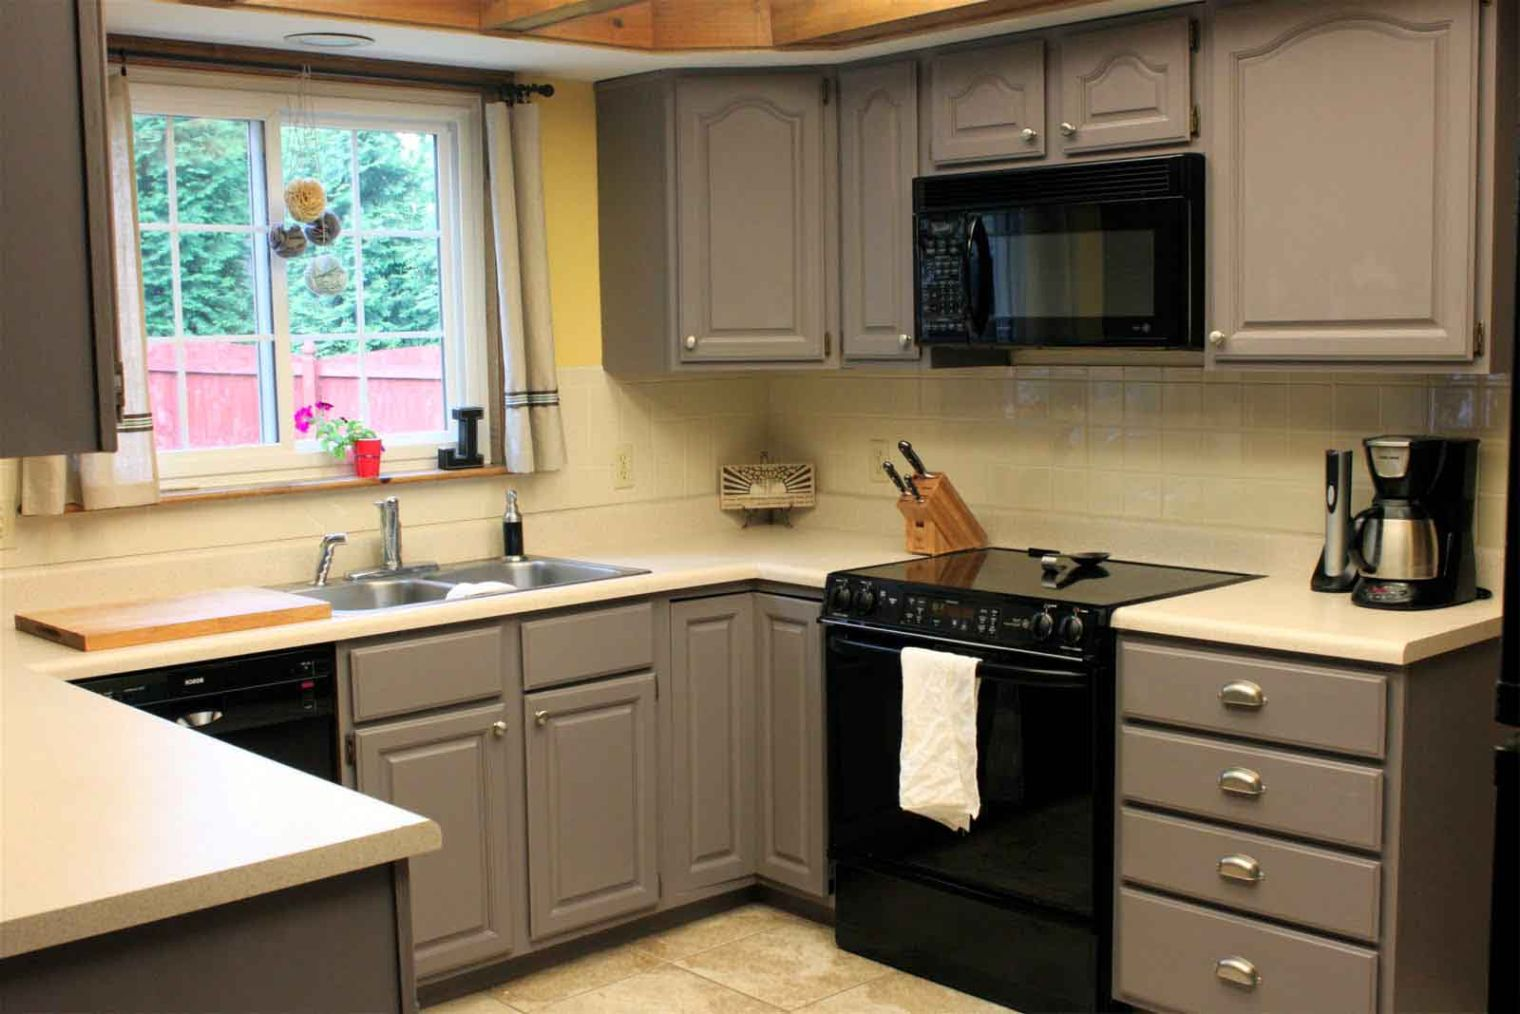 Grey Painted Kitchen Cabinets In Small Kitchen Space - Grey and white small kitchen